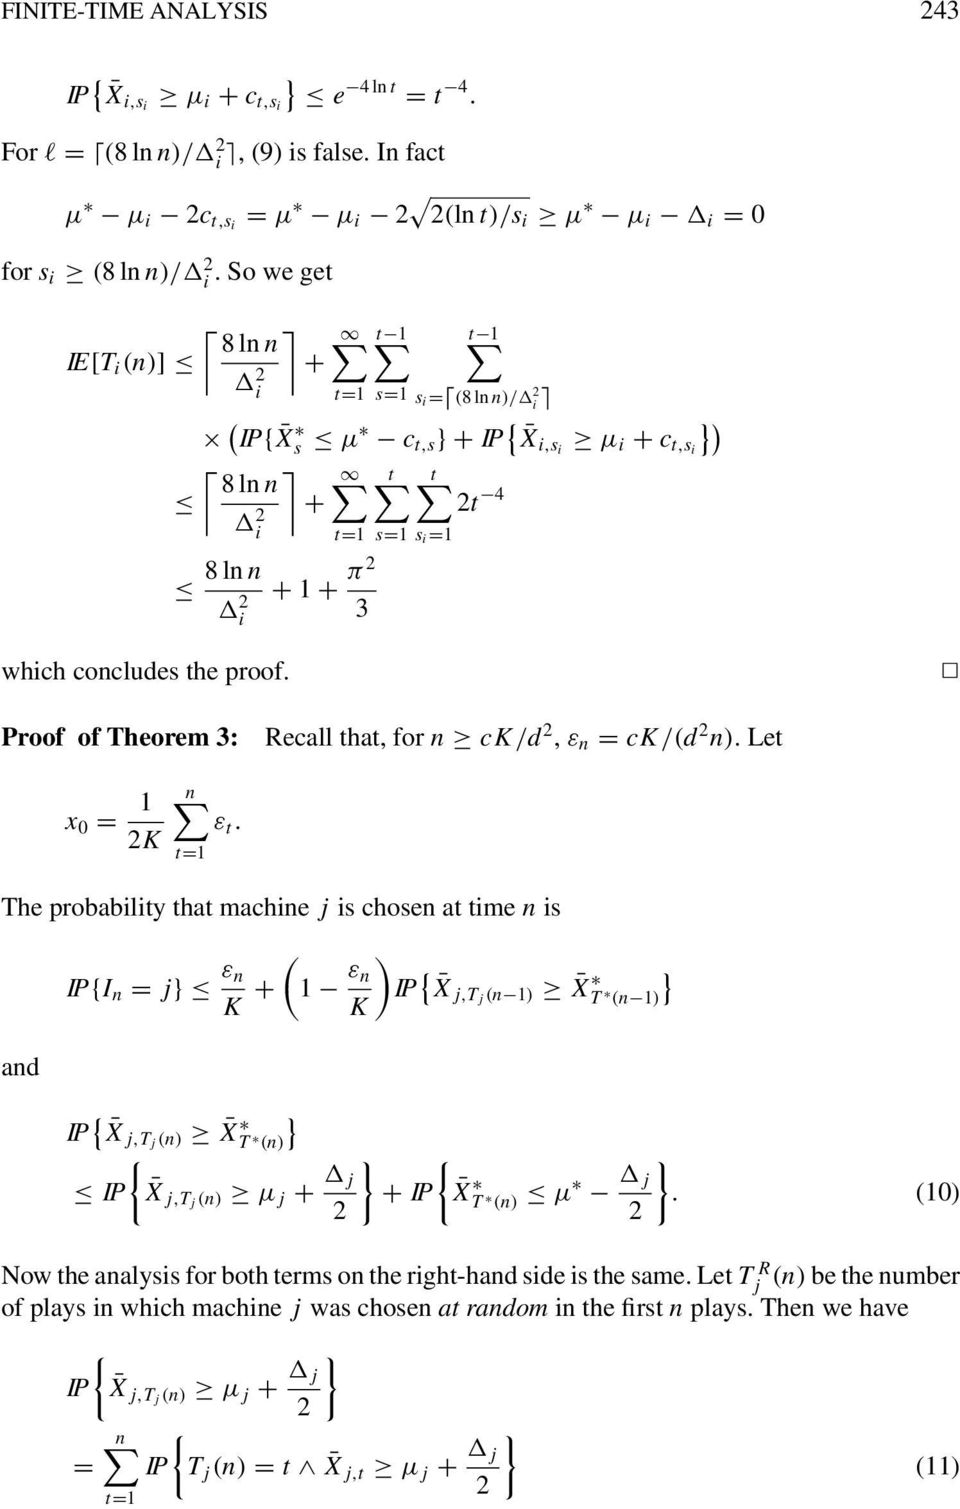 Proof of Theorem 3: Recall that, for n ck/d, ε n = ck/(d n). Let x 0 = 1 K ε t.